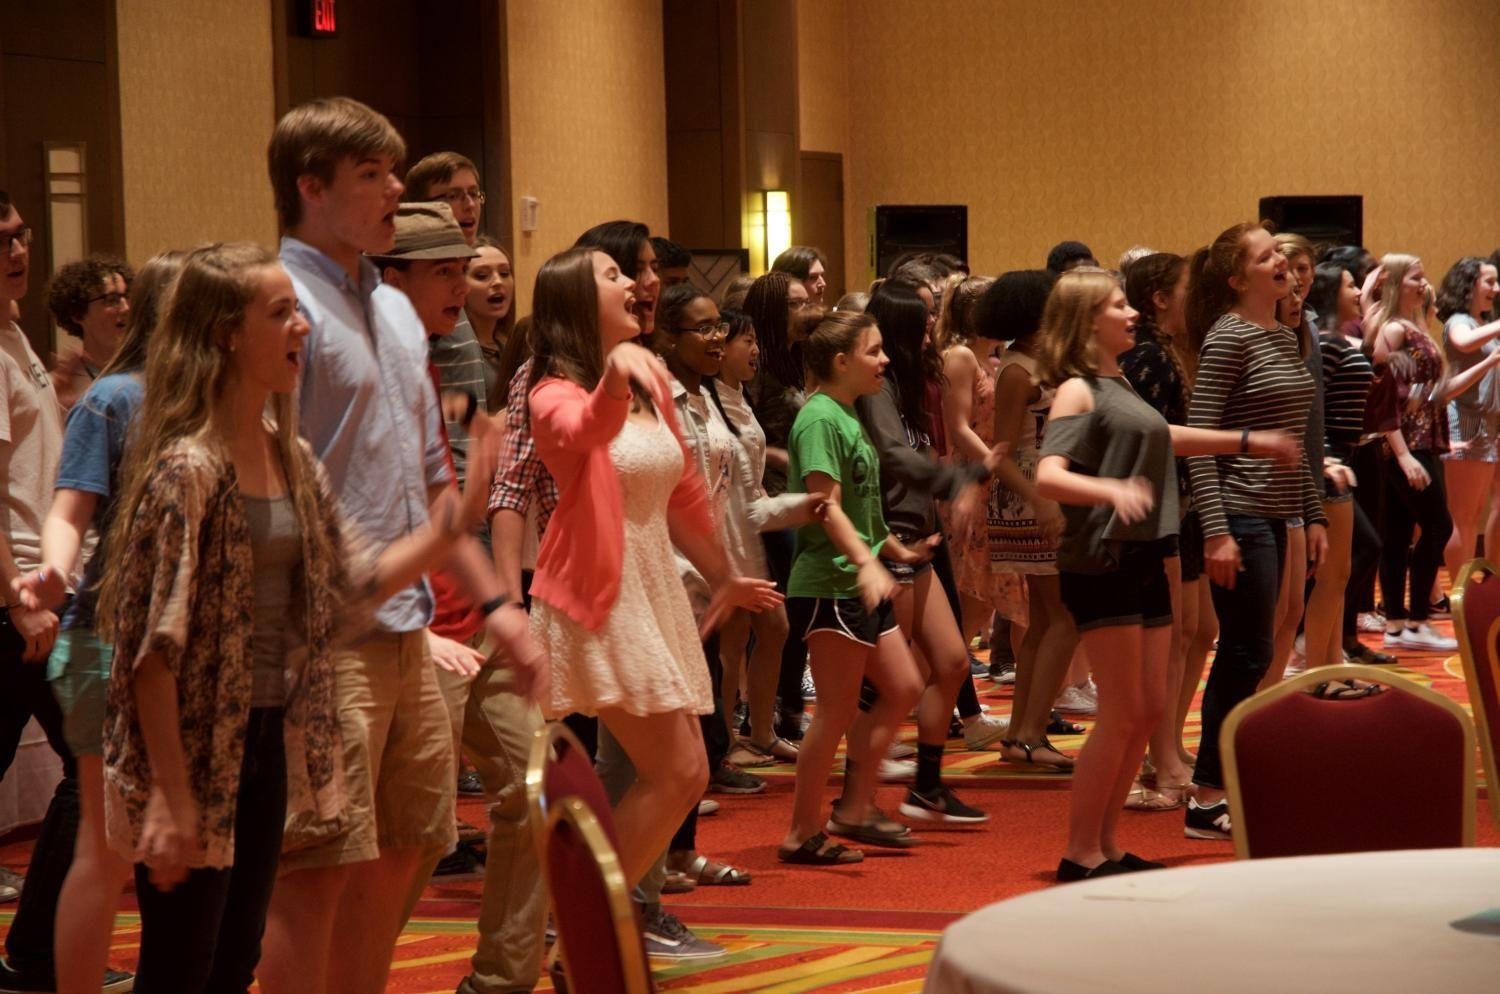 The Festival of Flowers featured a flash mob performance by the West High choirs, performing